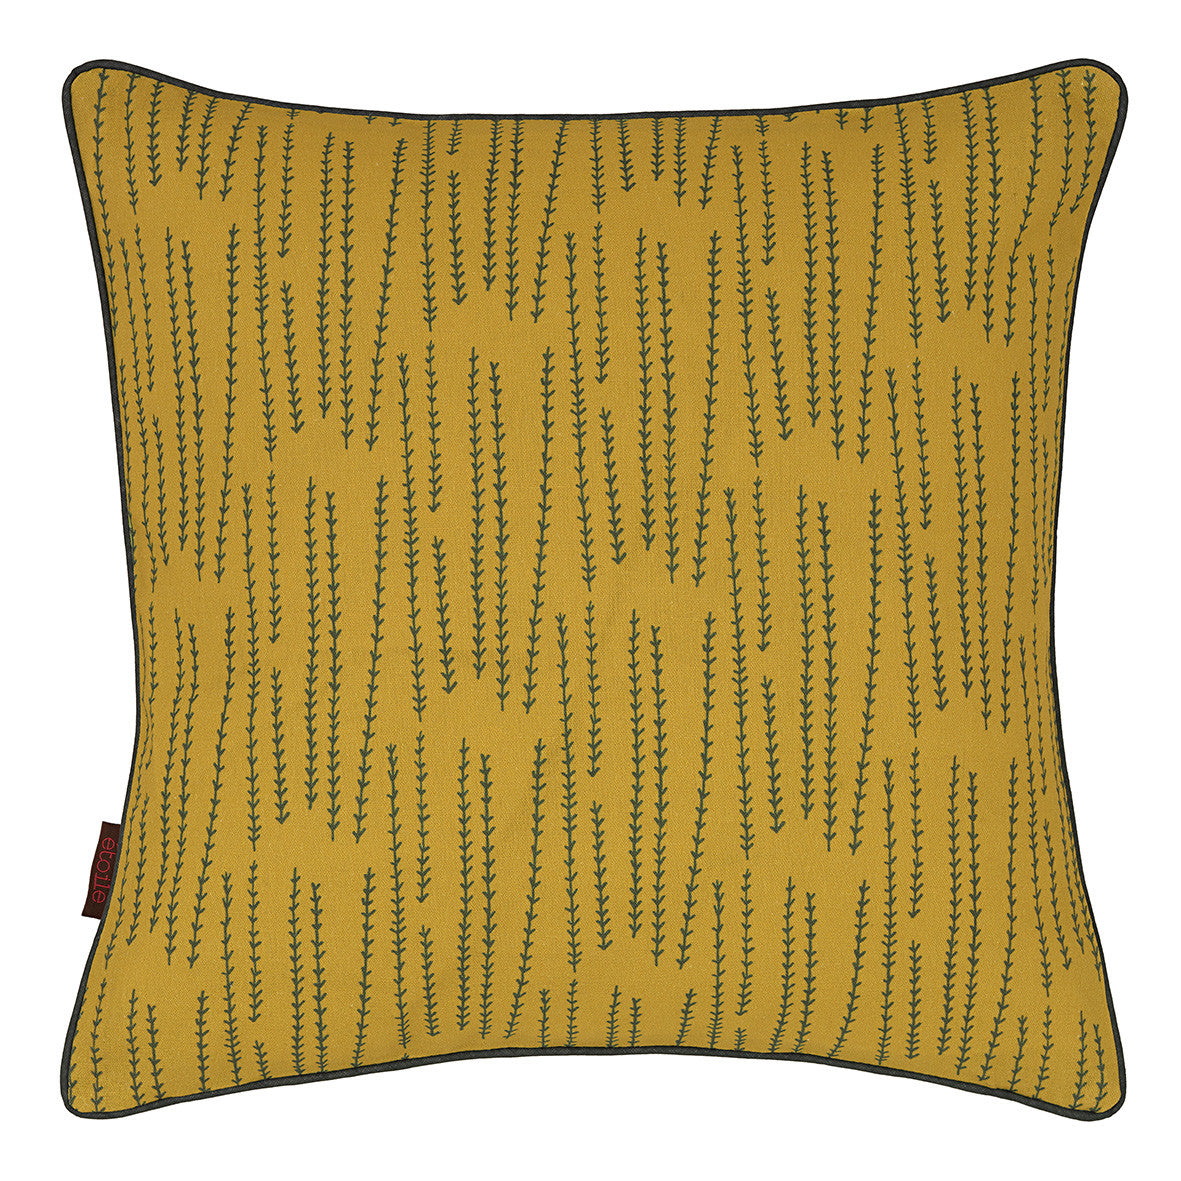 Graphic Rosemary Pattern Linen Union Printed Cushion in Mustard Yellow and Olive Green